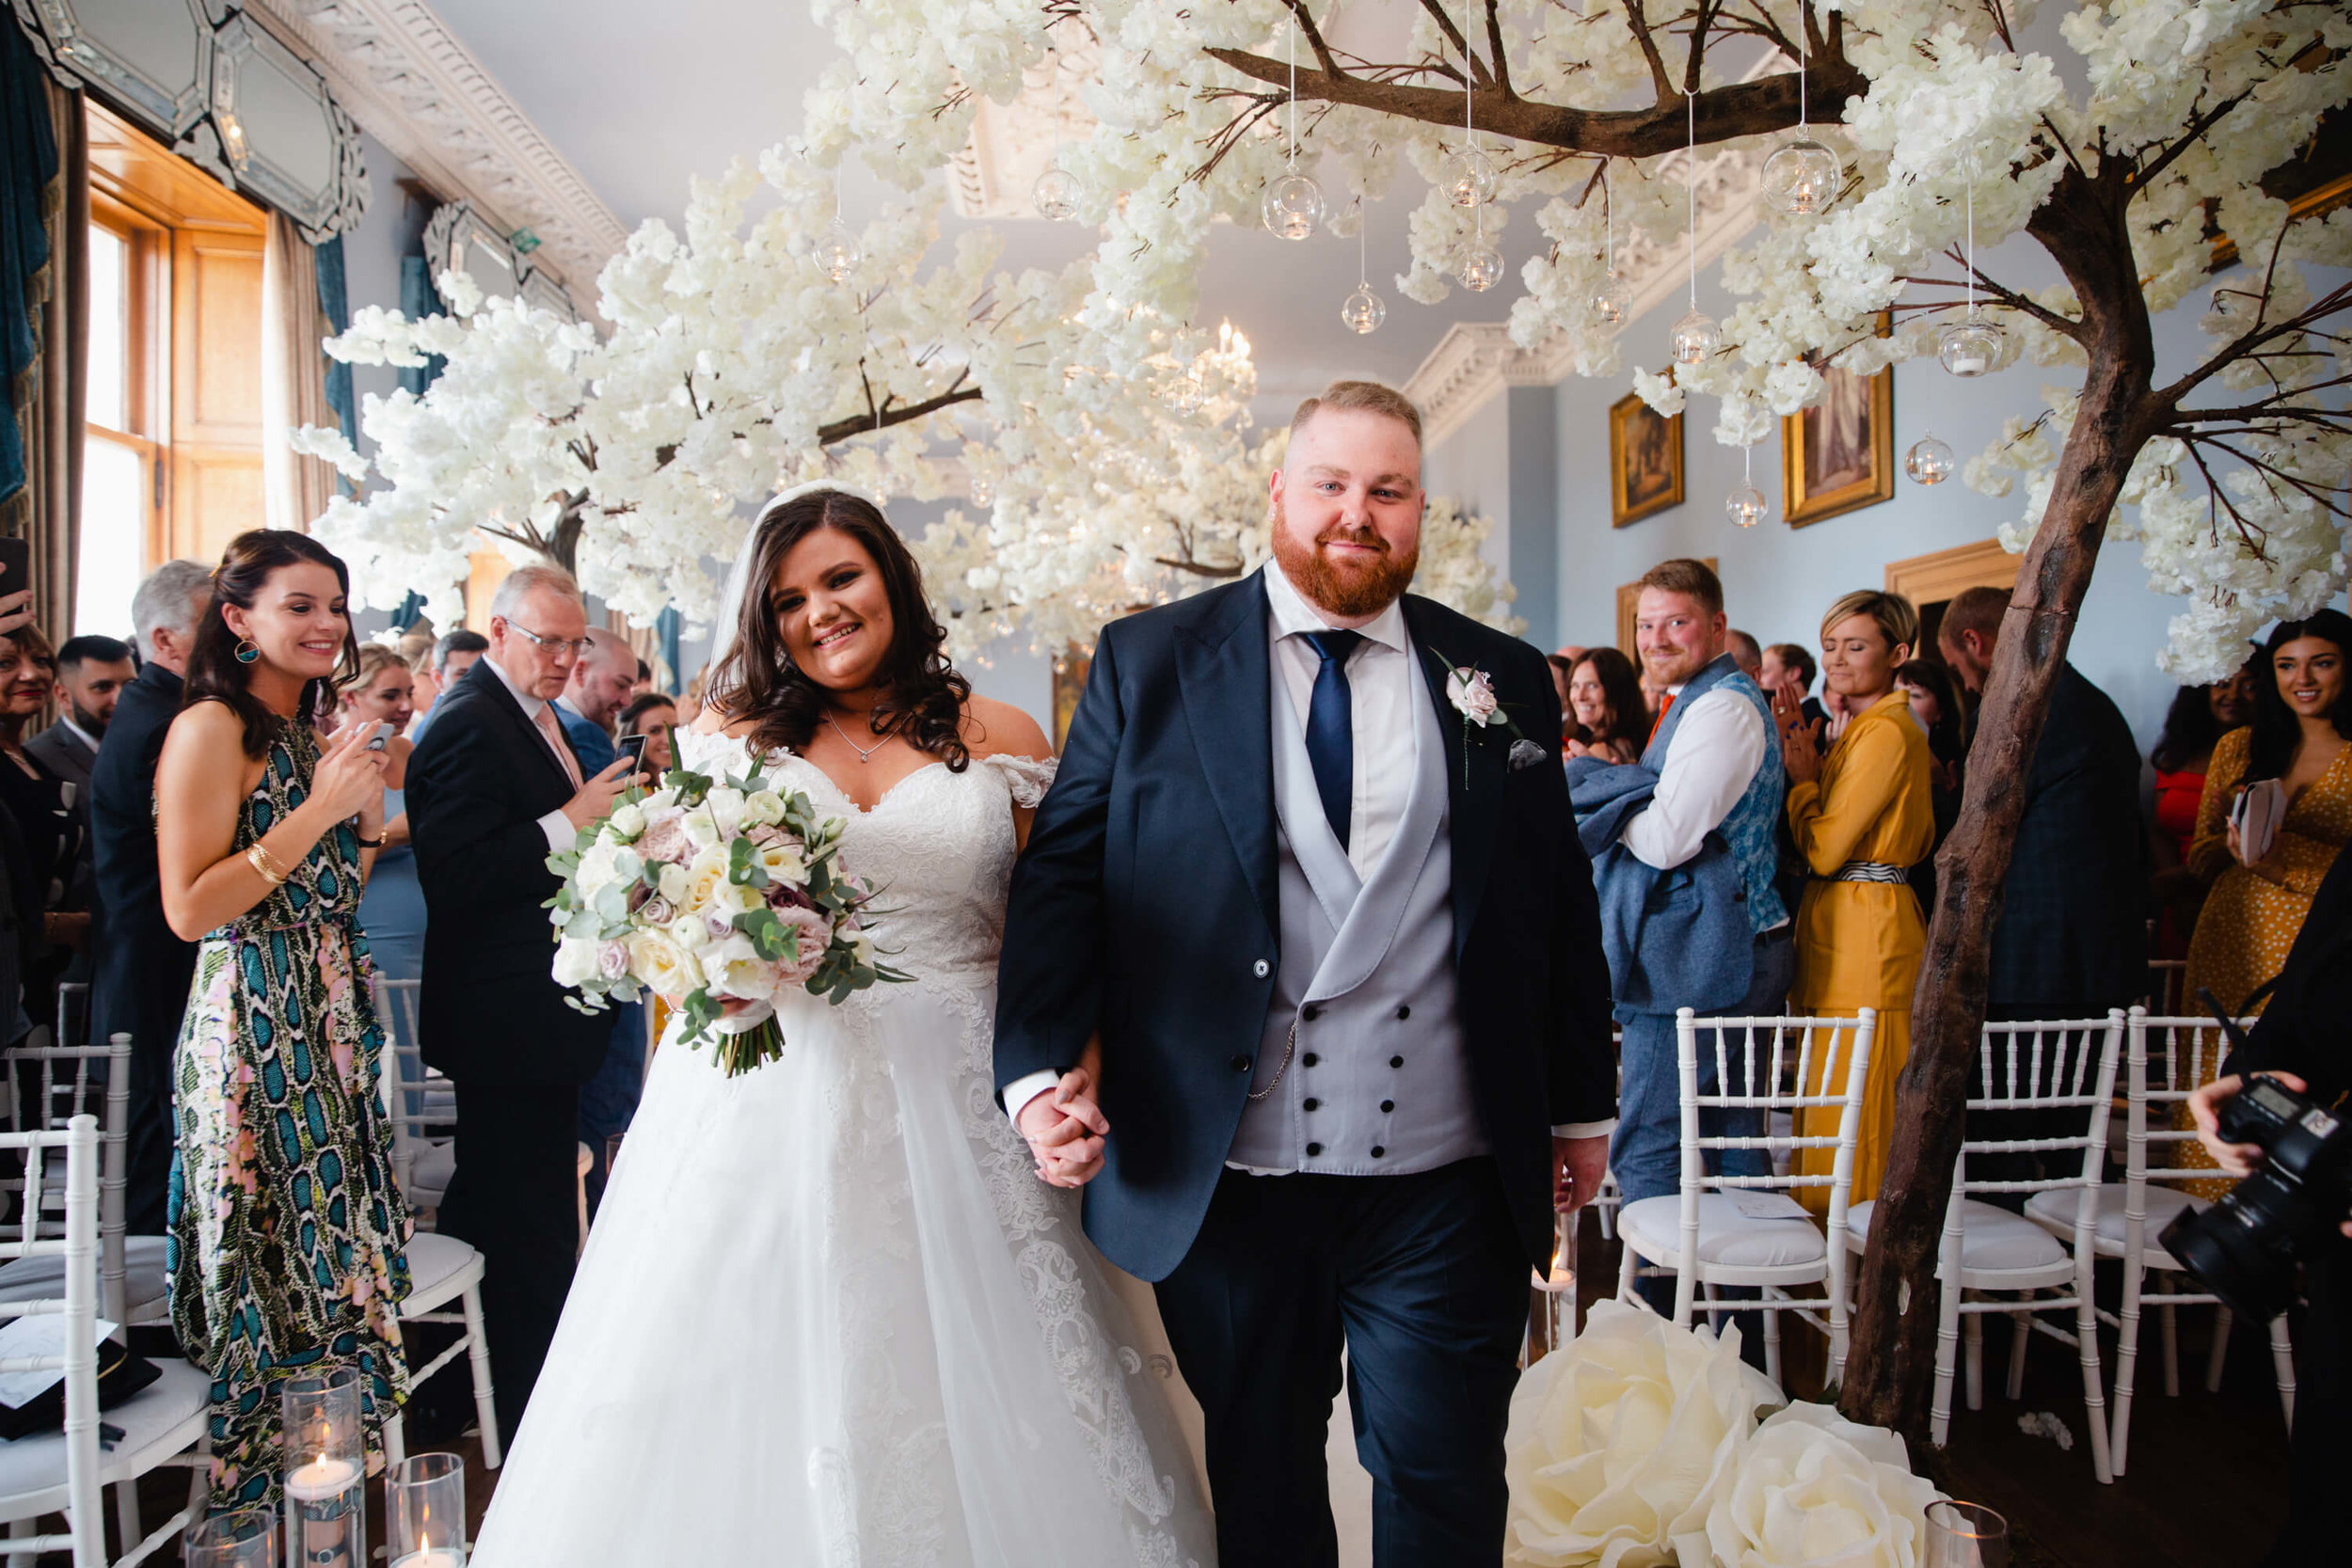 bride and groom with big smiles as wedding ceremony finishes